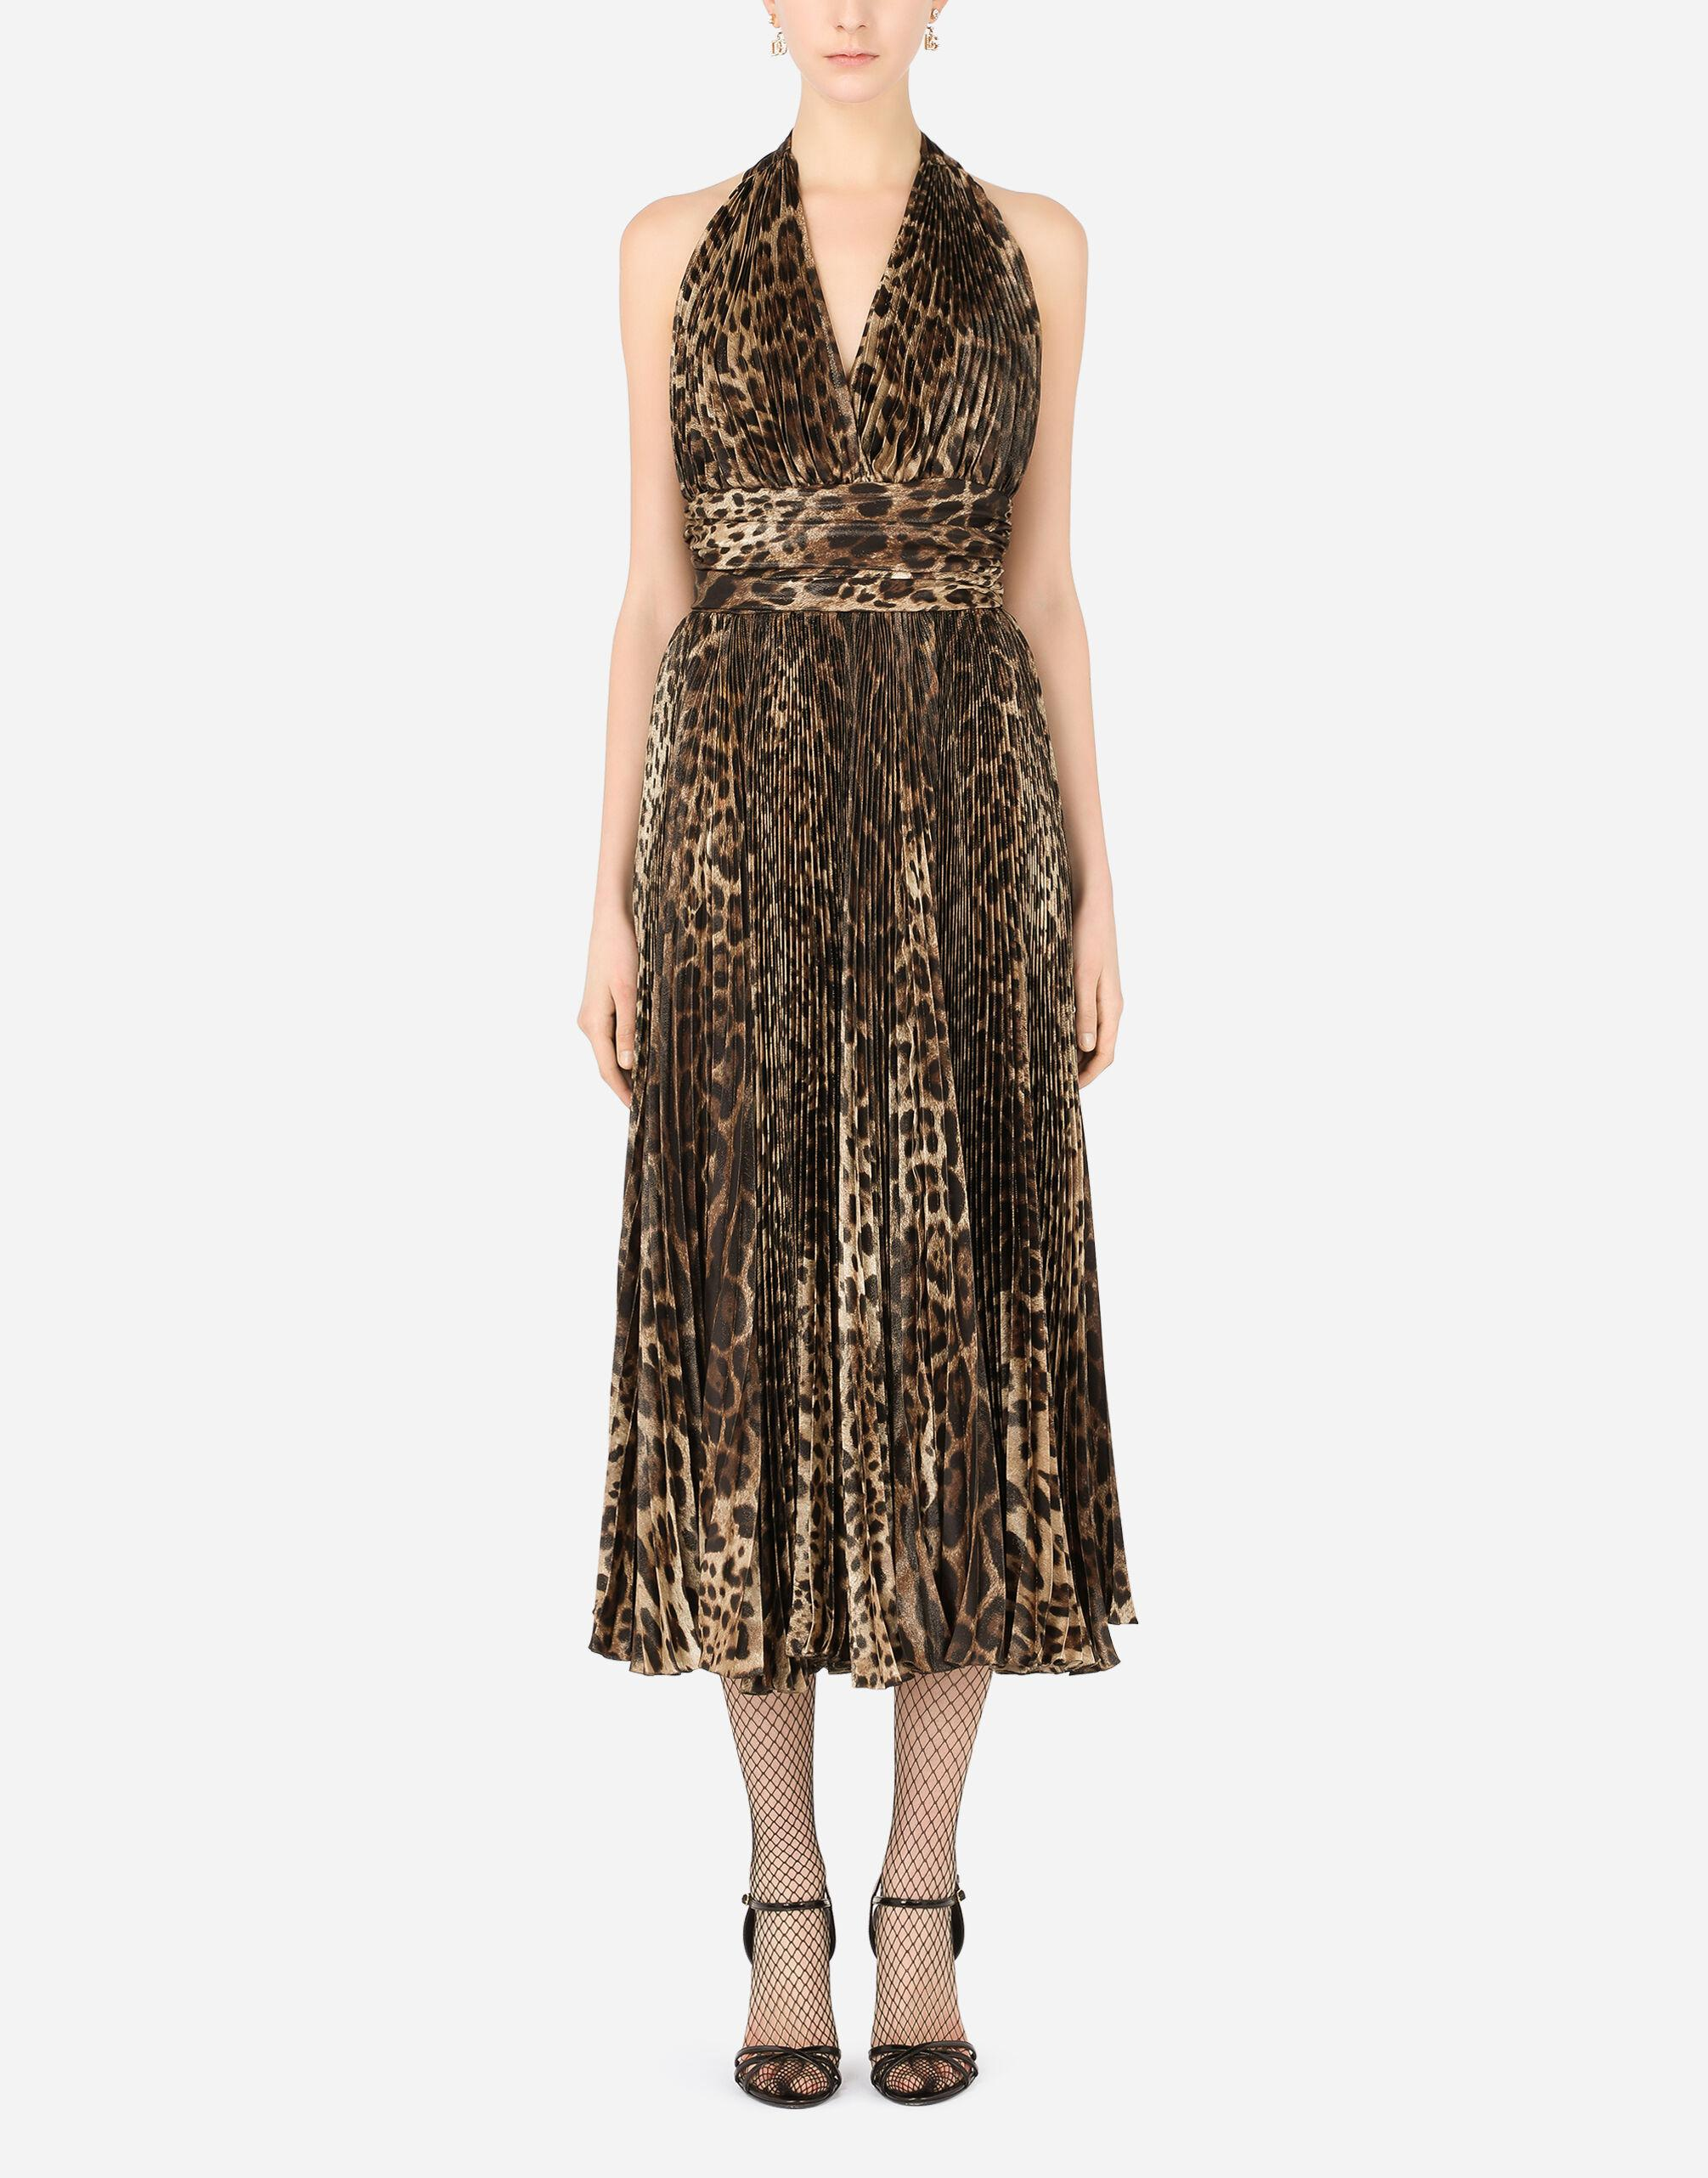 Crepe de chine calf-length dress with leopard print and sunray pleats